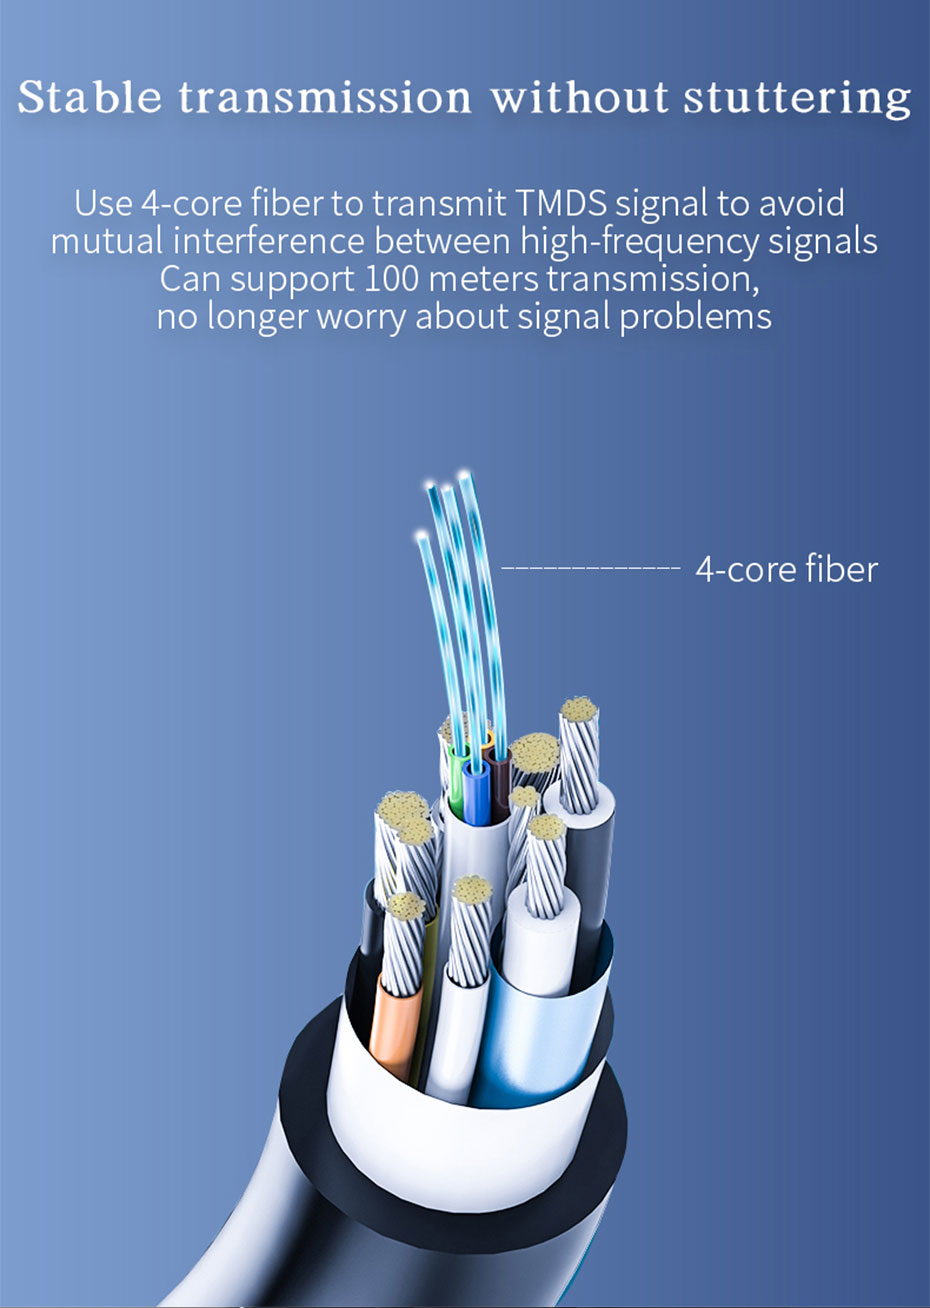 HDMI optical fiber cable uses 4-core optical fiber to transmit TMDS signal, which is stable and not stuck